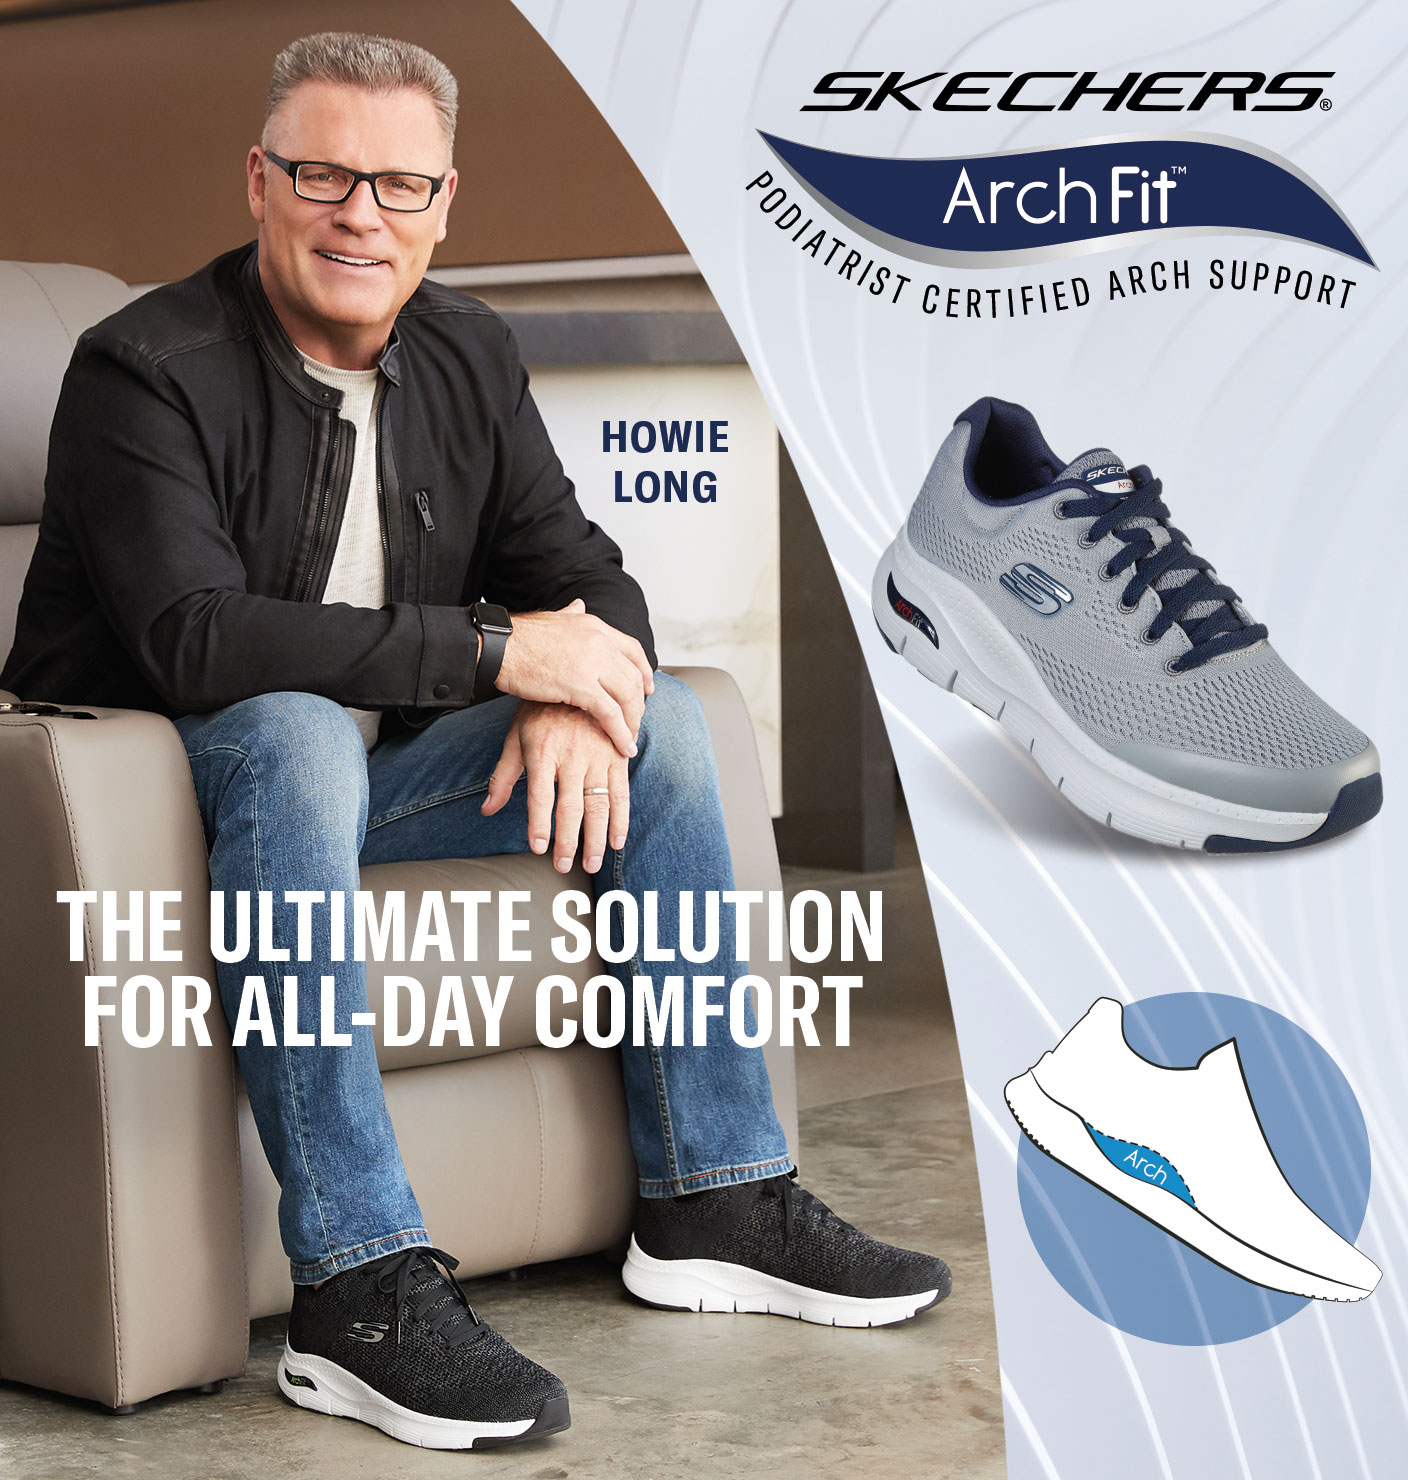 skechers shoes online sale